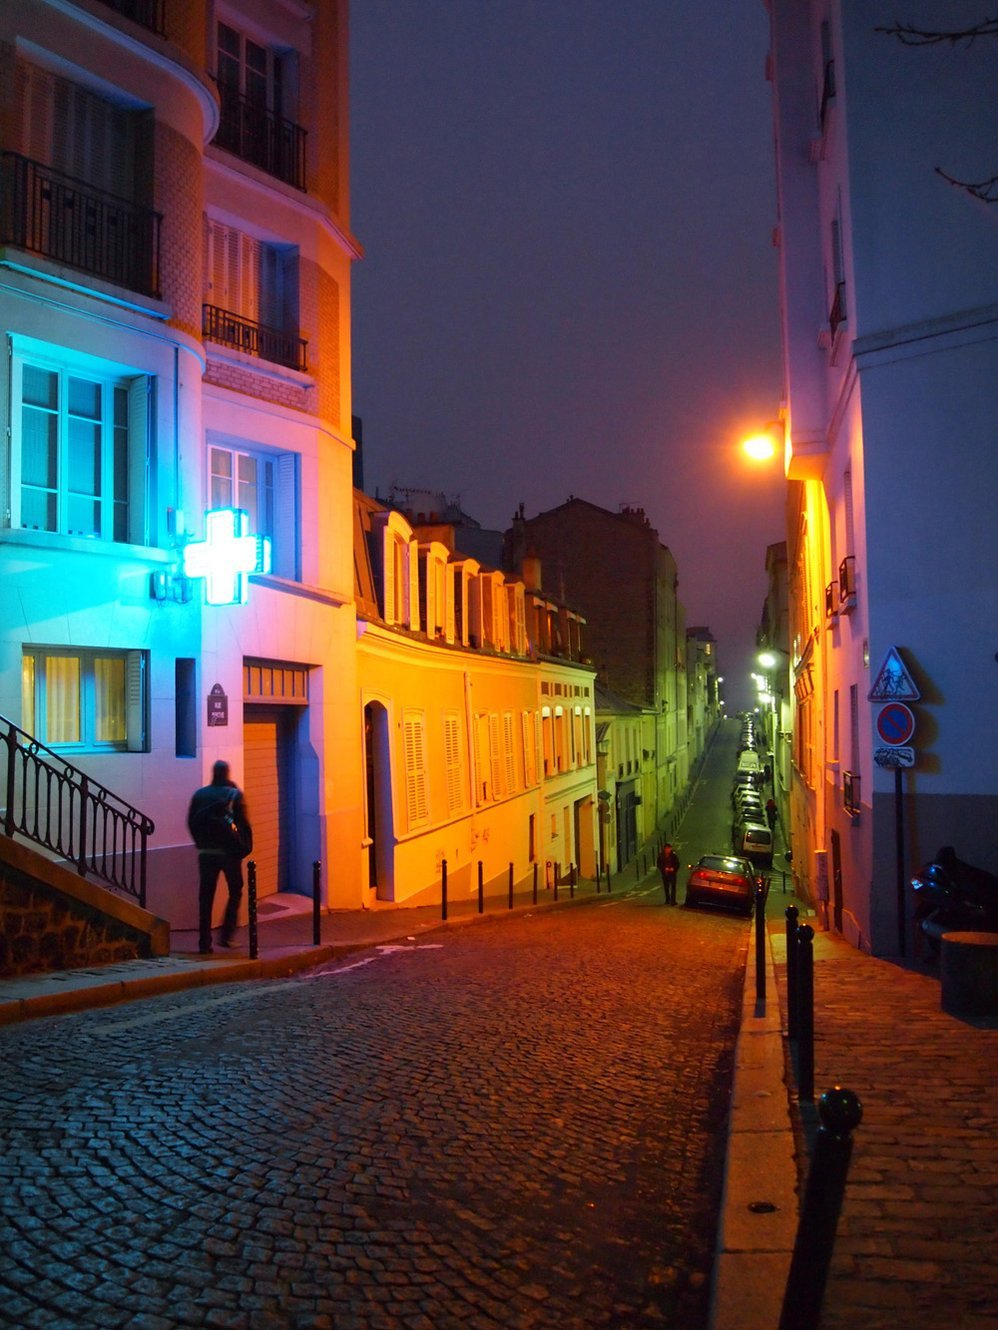 Rue Berthe, Montmartre by Janelle Fernandez. I'm sure I've walked down this road, then again, there's probably an awful lot of roads like this in Montmartre. I think it's near a square with a small shop called Le Singe Qui Lise [The Monkey That Reads], could be mistaken though. Anyway, it's from Pictory's latest photo showcase, this one being on Paris. I'd have to say that it's my favourite showcase on the website so far.